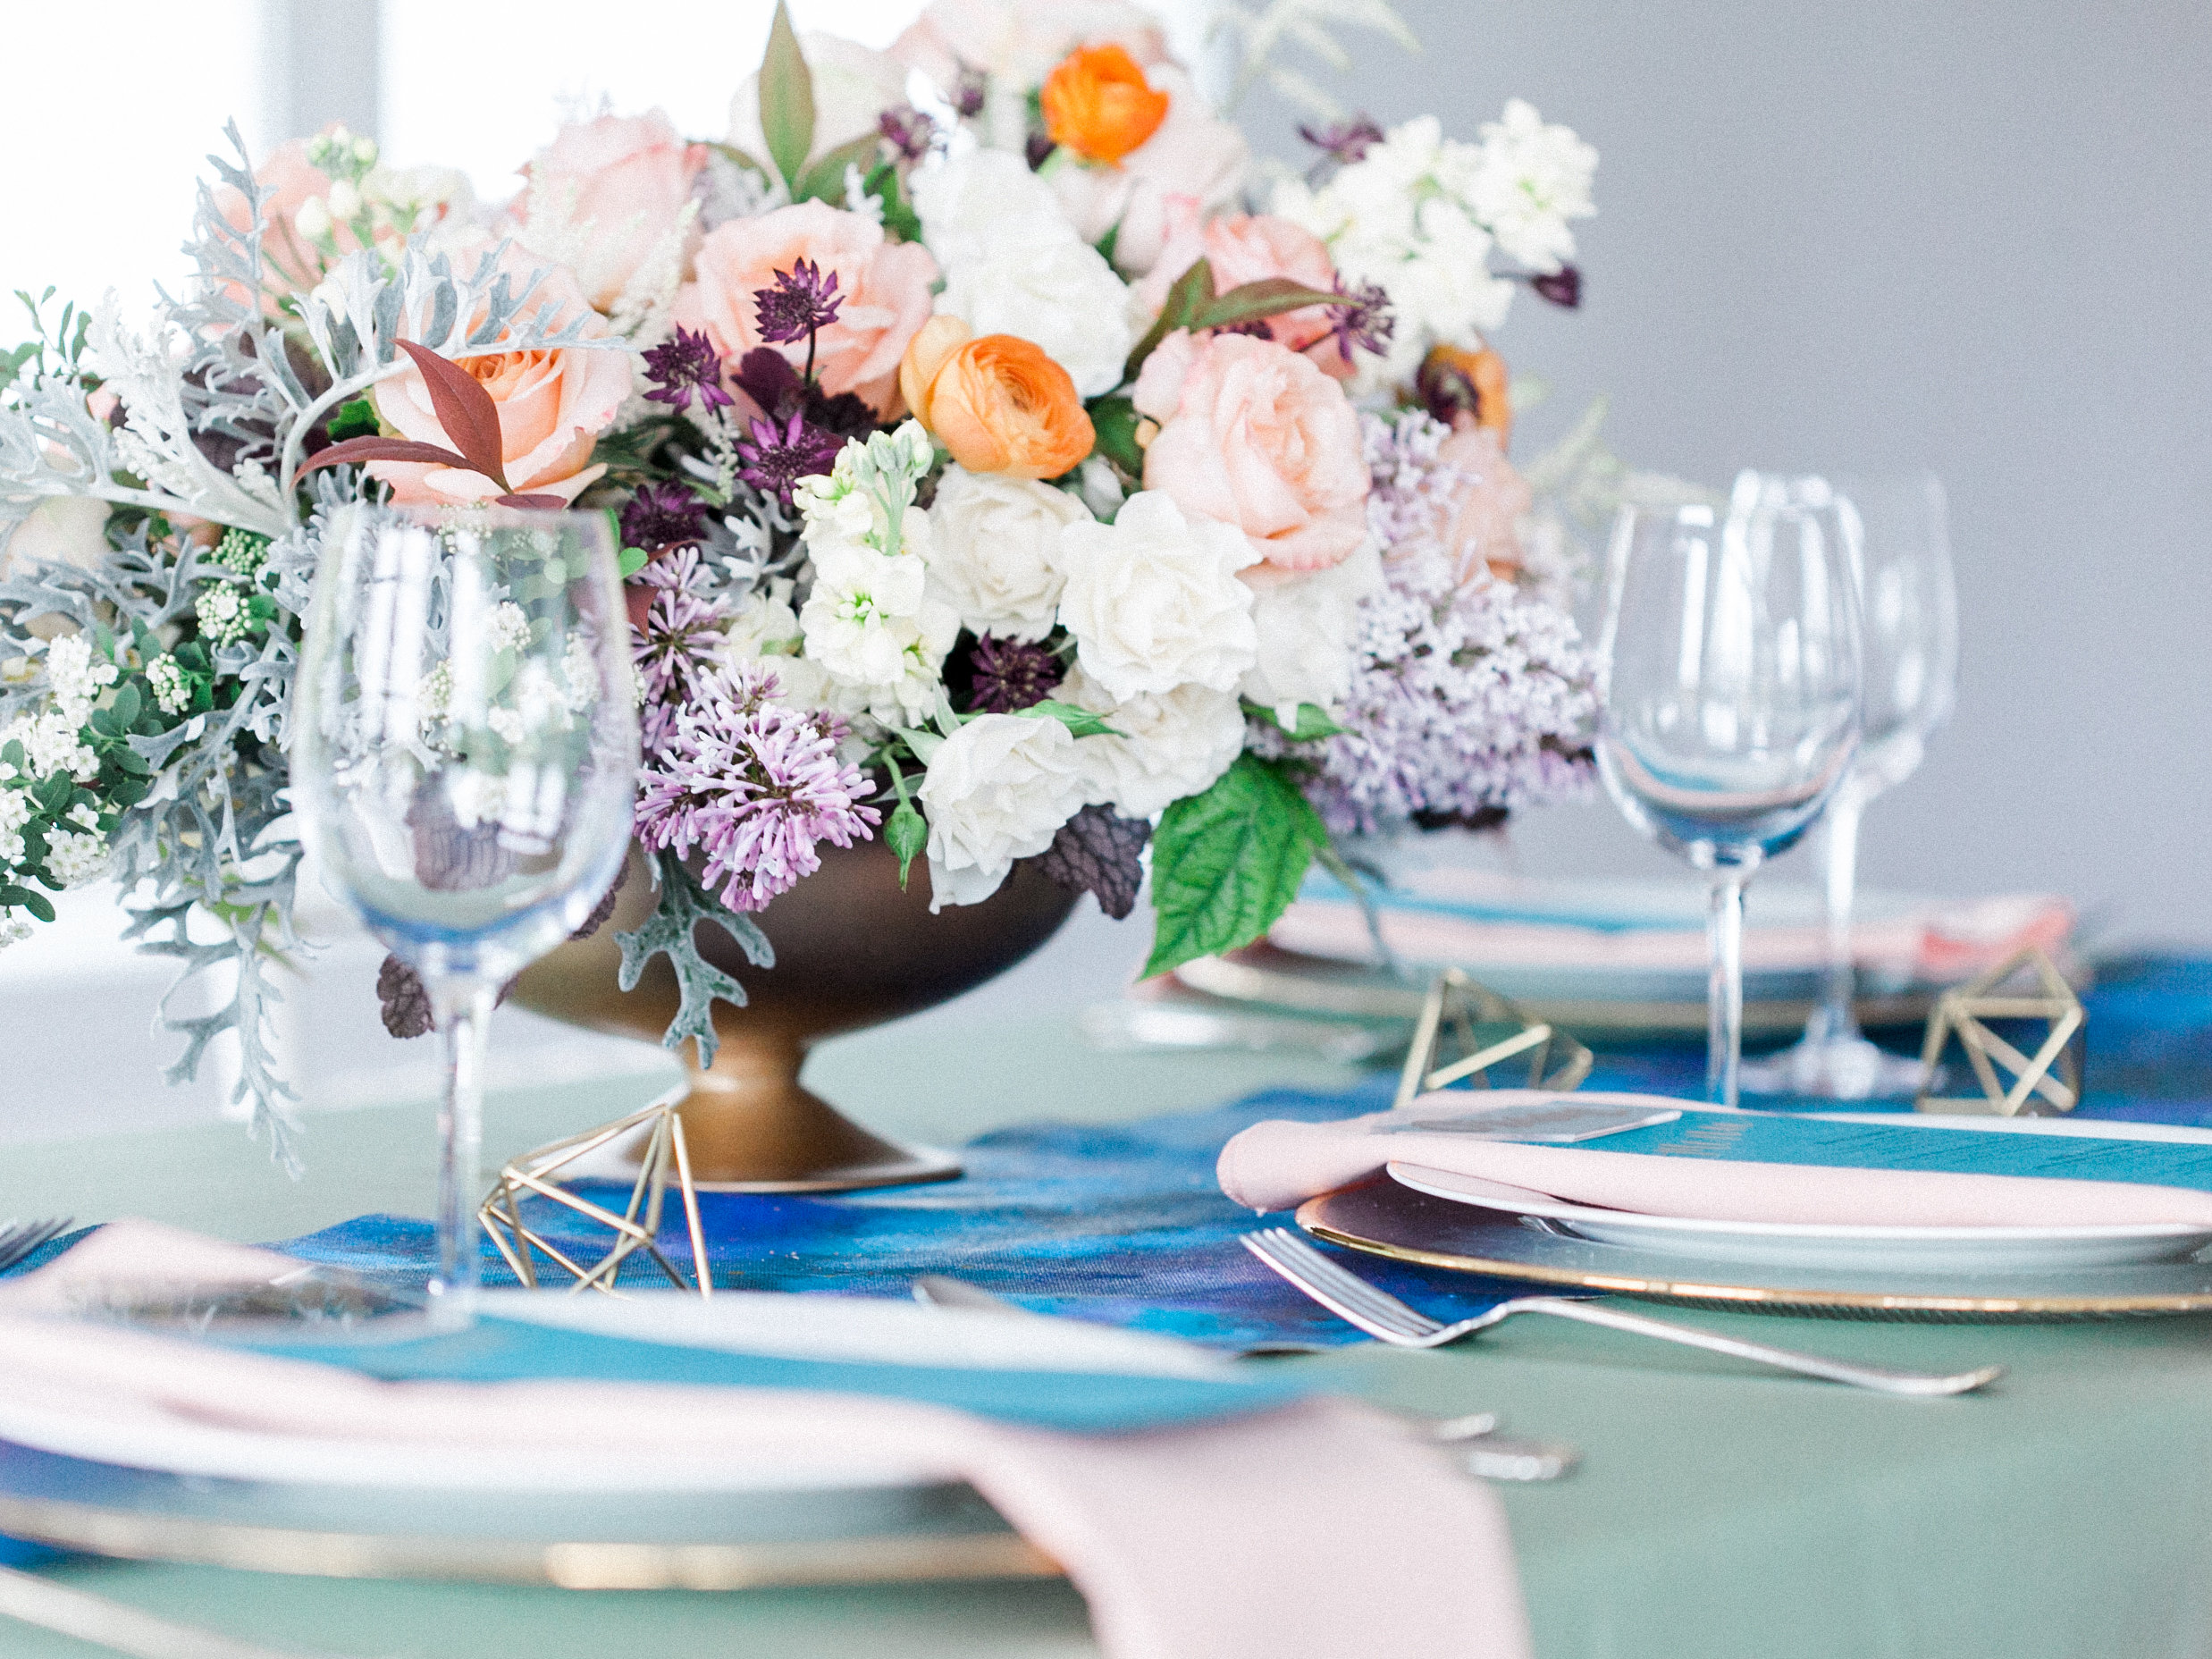 Lush Floral centerpiece for wedding at Rixey Manor